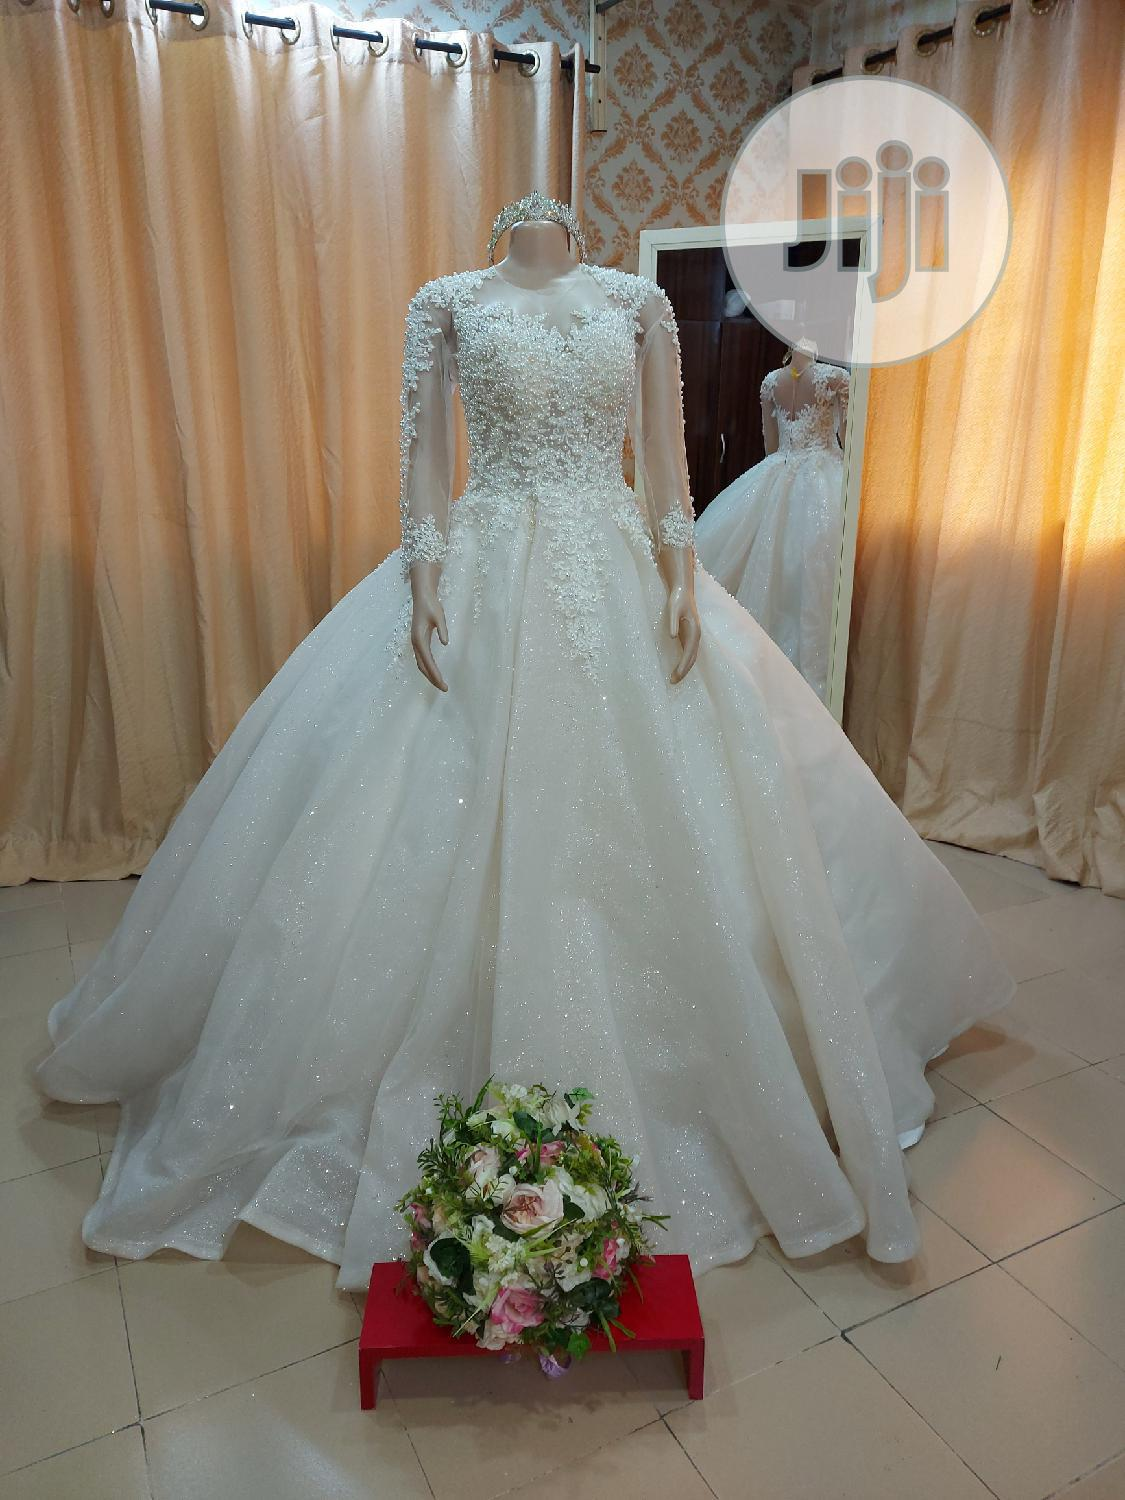 Wedding Gown   Wedding Venues & Services for sale in Magodo, Lagos State, Nigeria